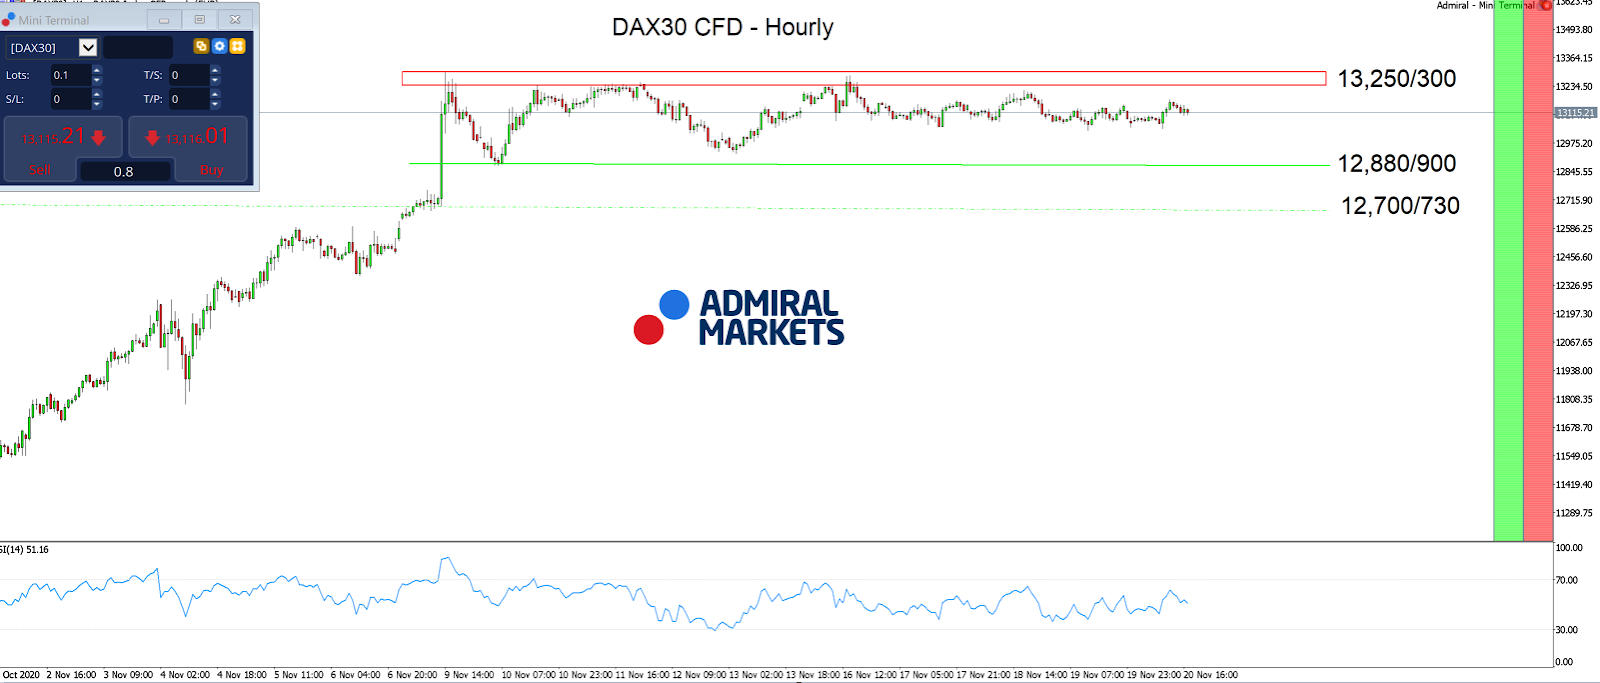 DAX30 CFD Hourly